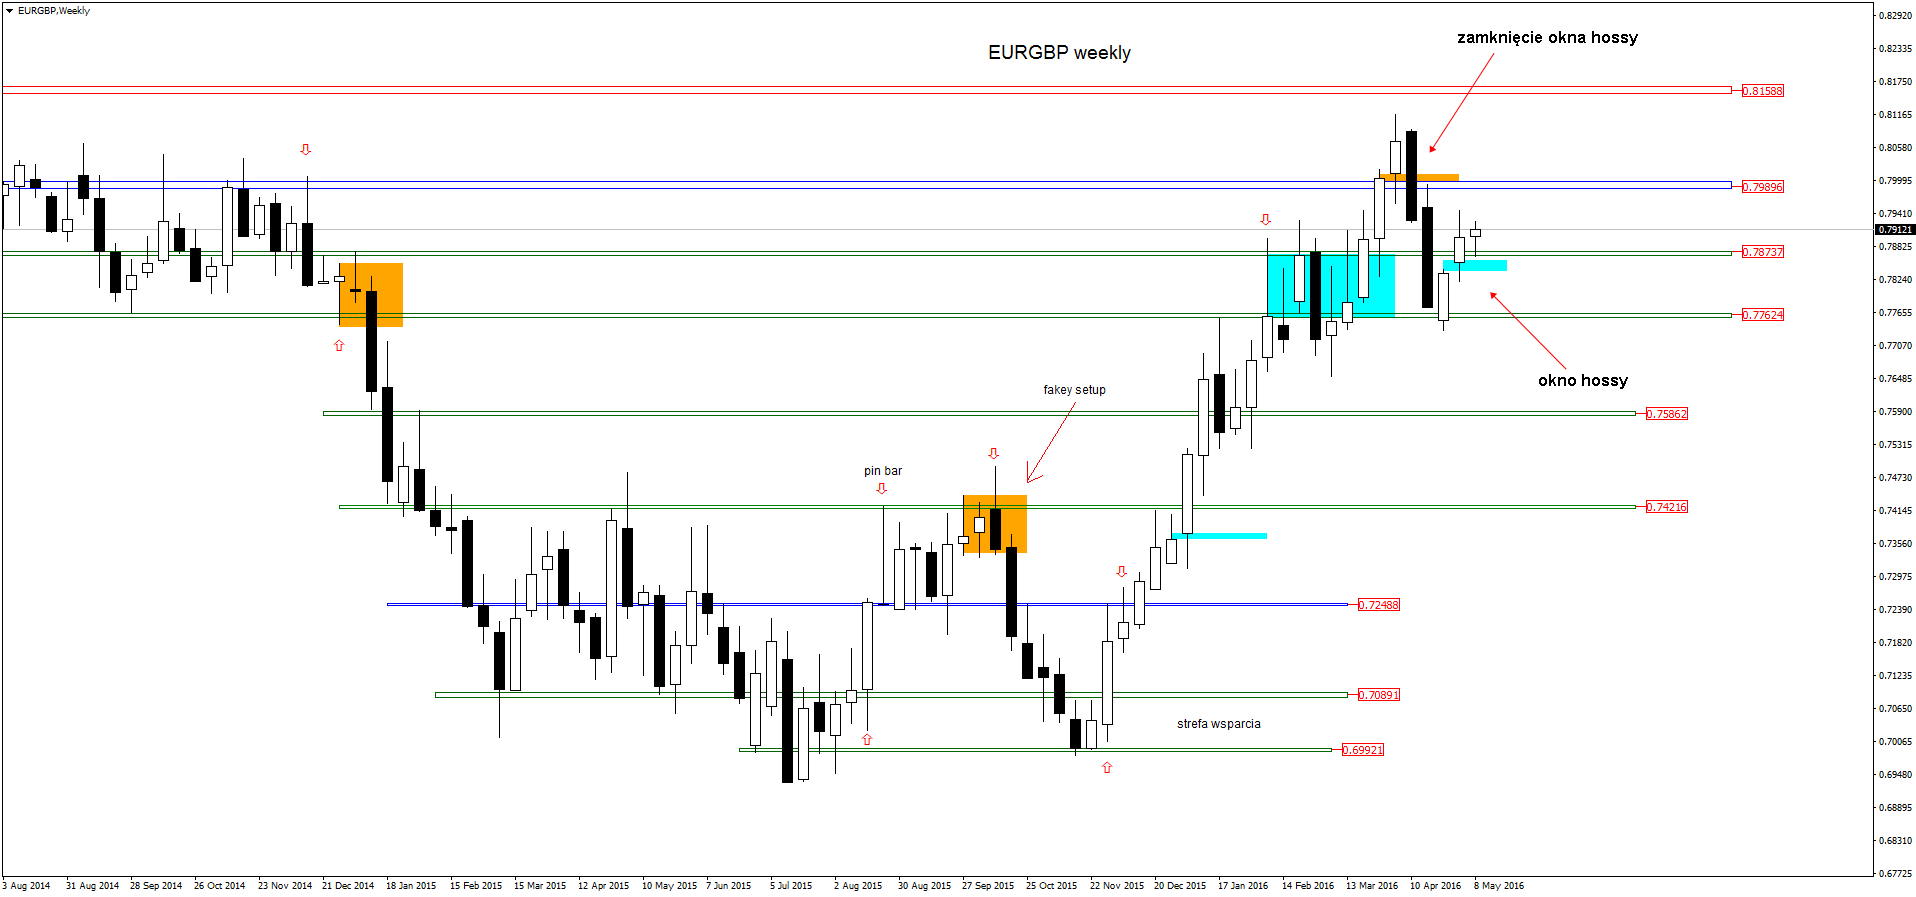 FXMAG forex eurgbp - szeroka analiza price action 3